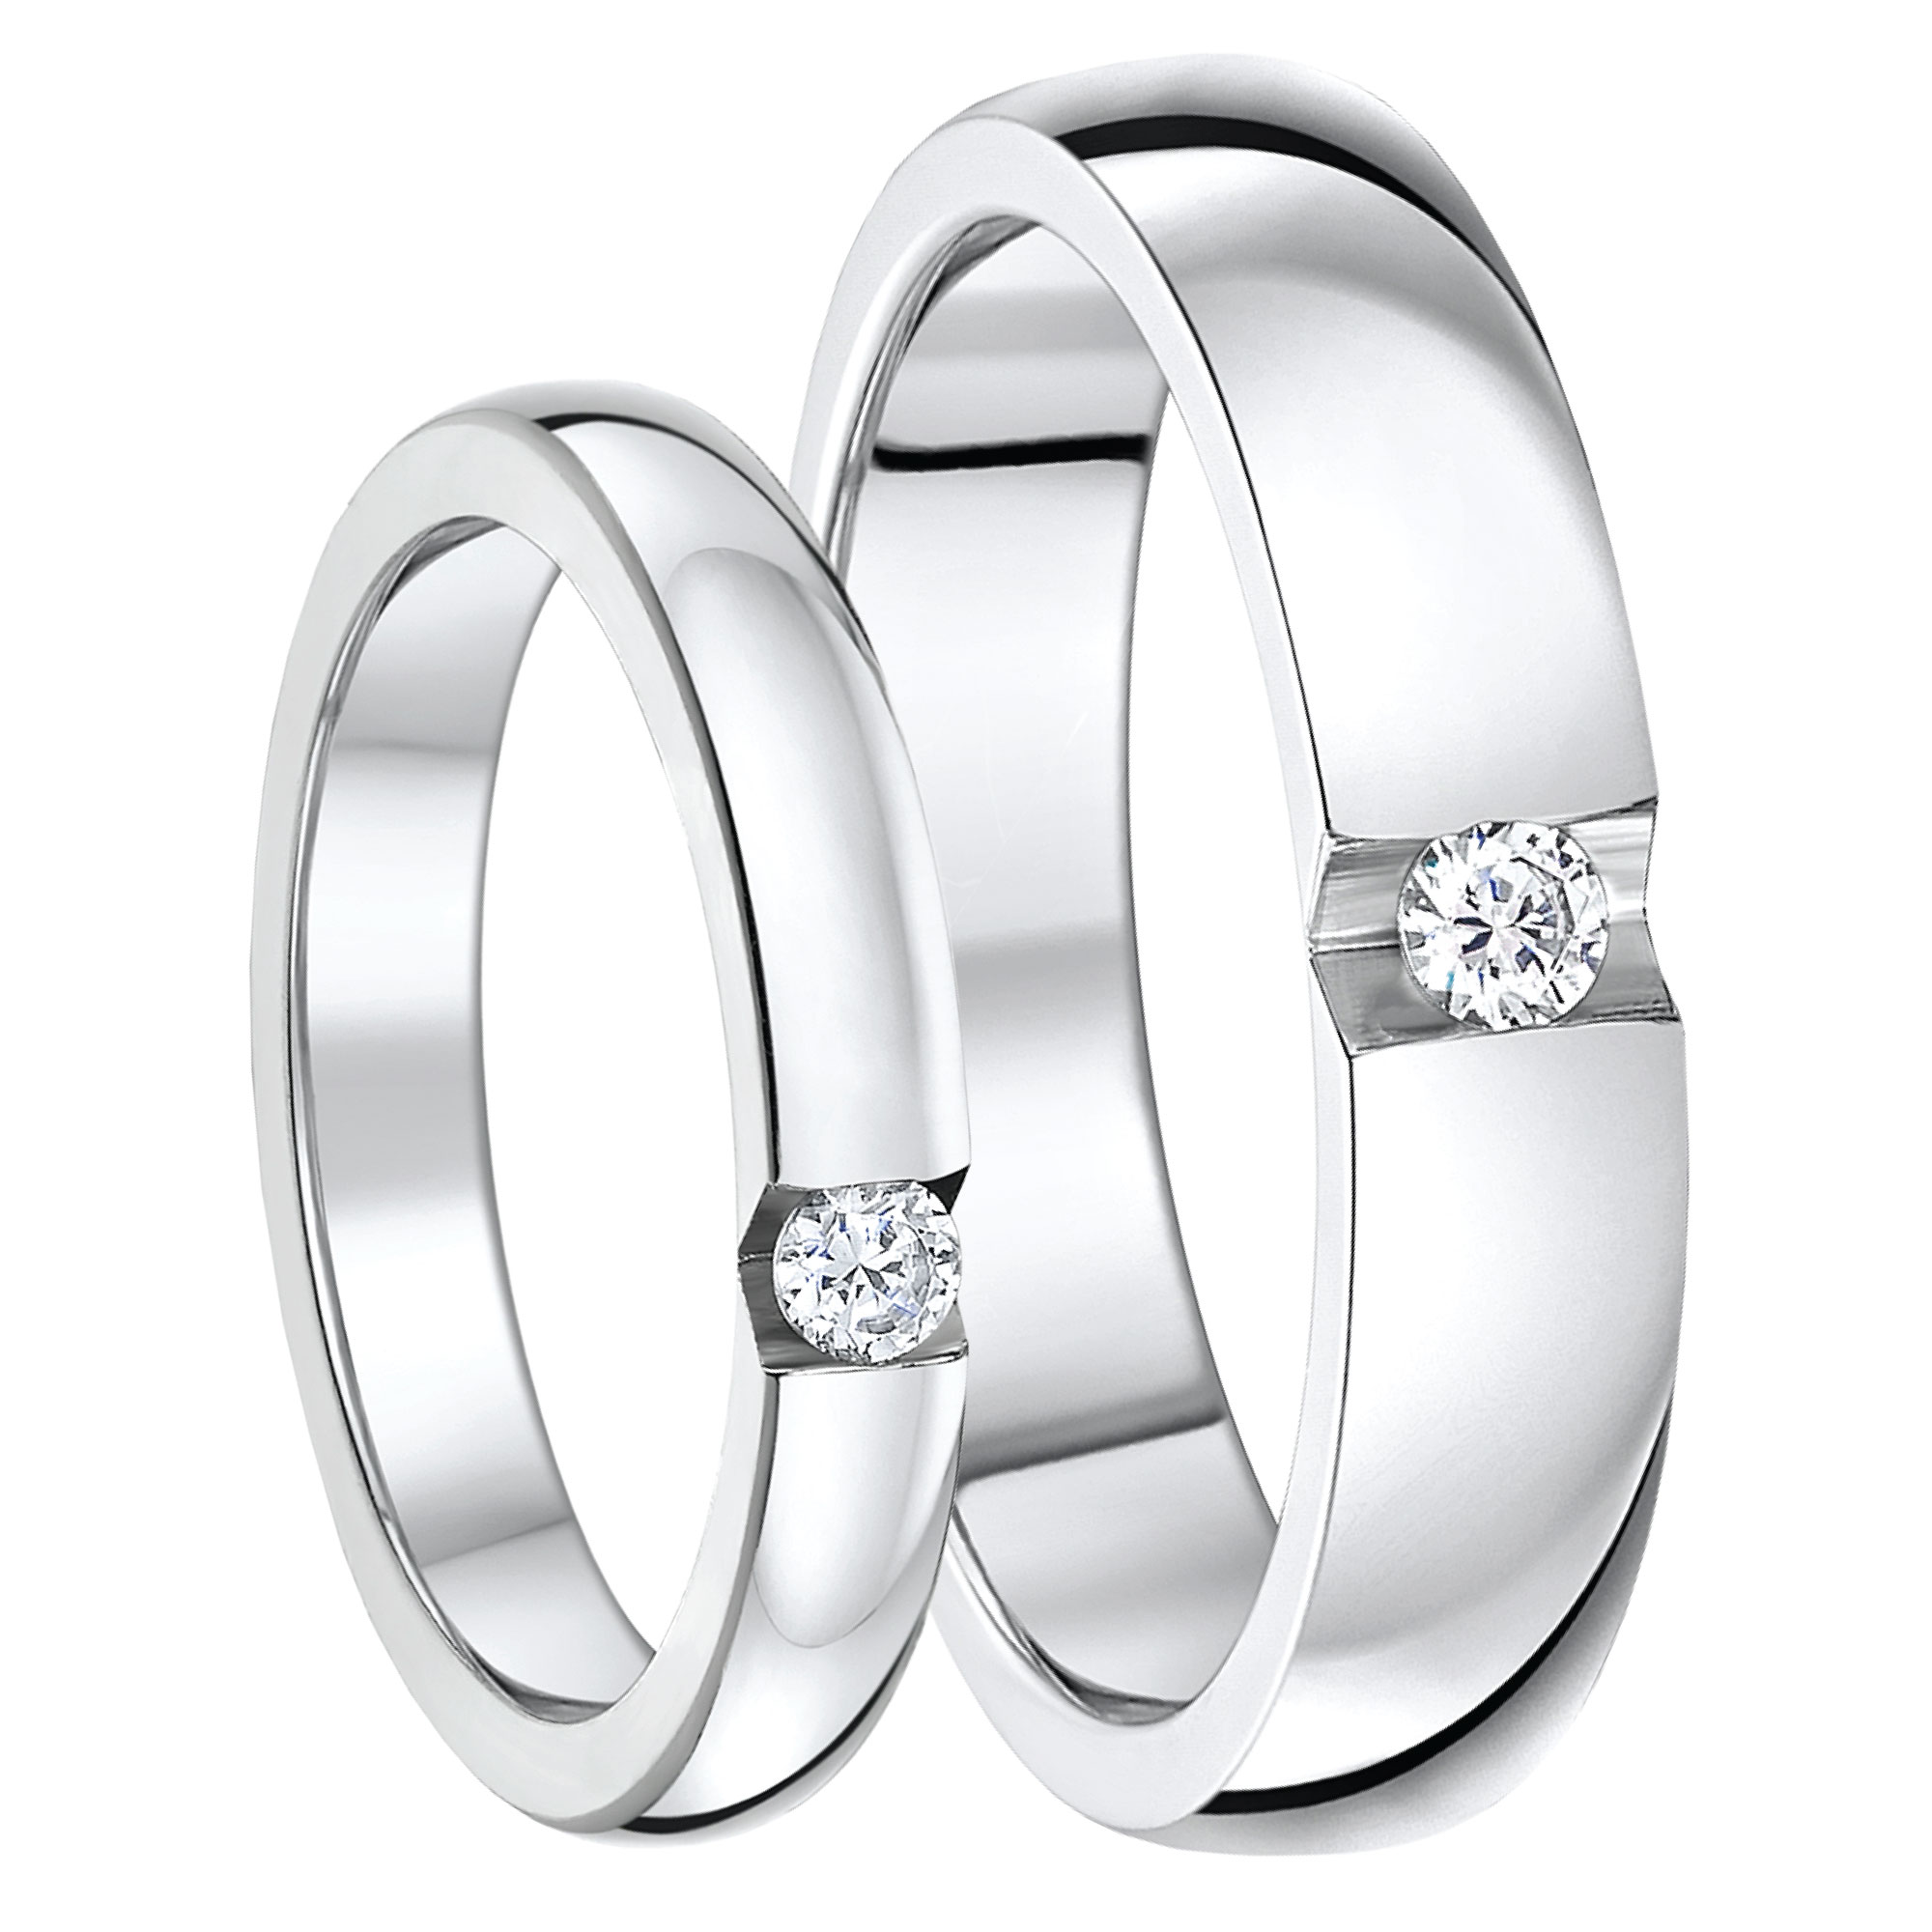 rings matching and wedding ring mens his set besttohave hers couple titanium jewellery image engagement